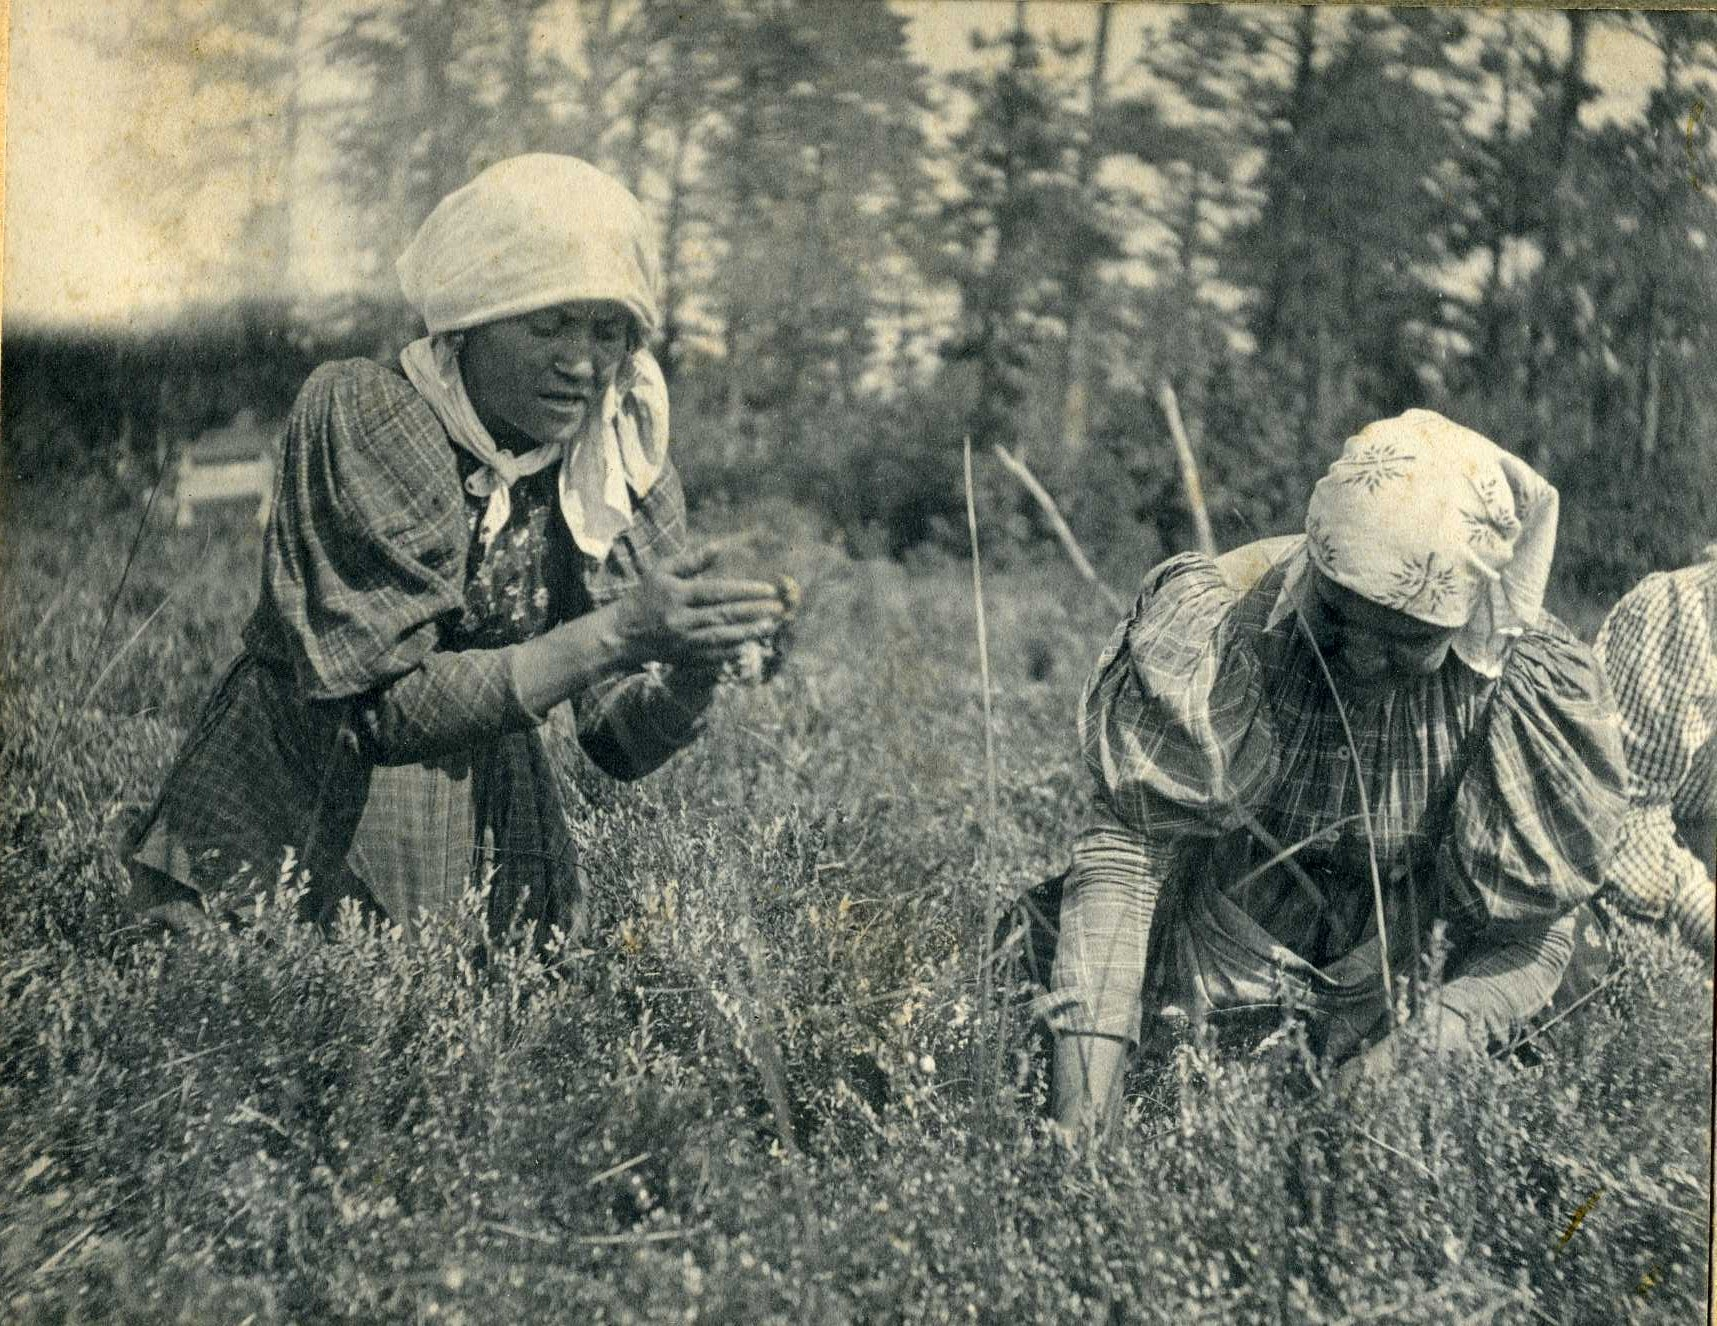 Two workers in bonnets bending over in field.